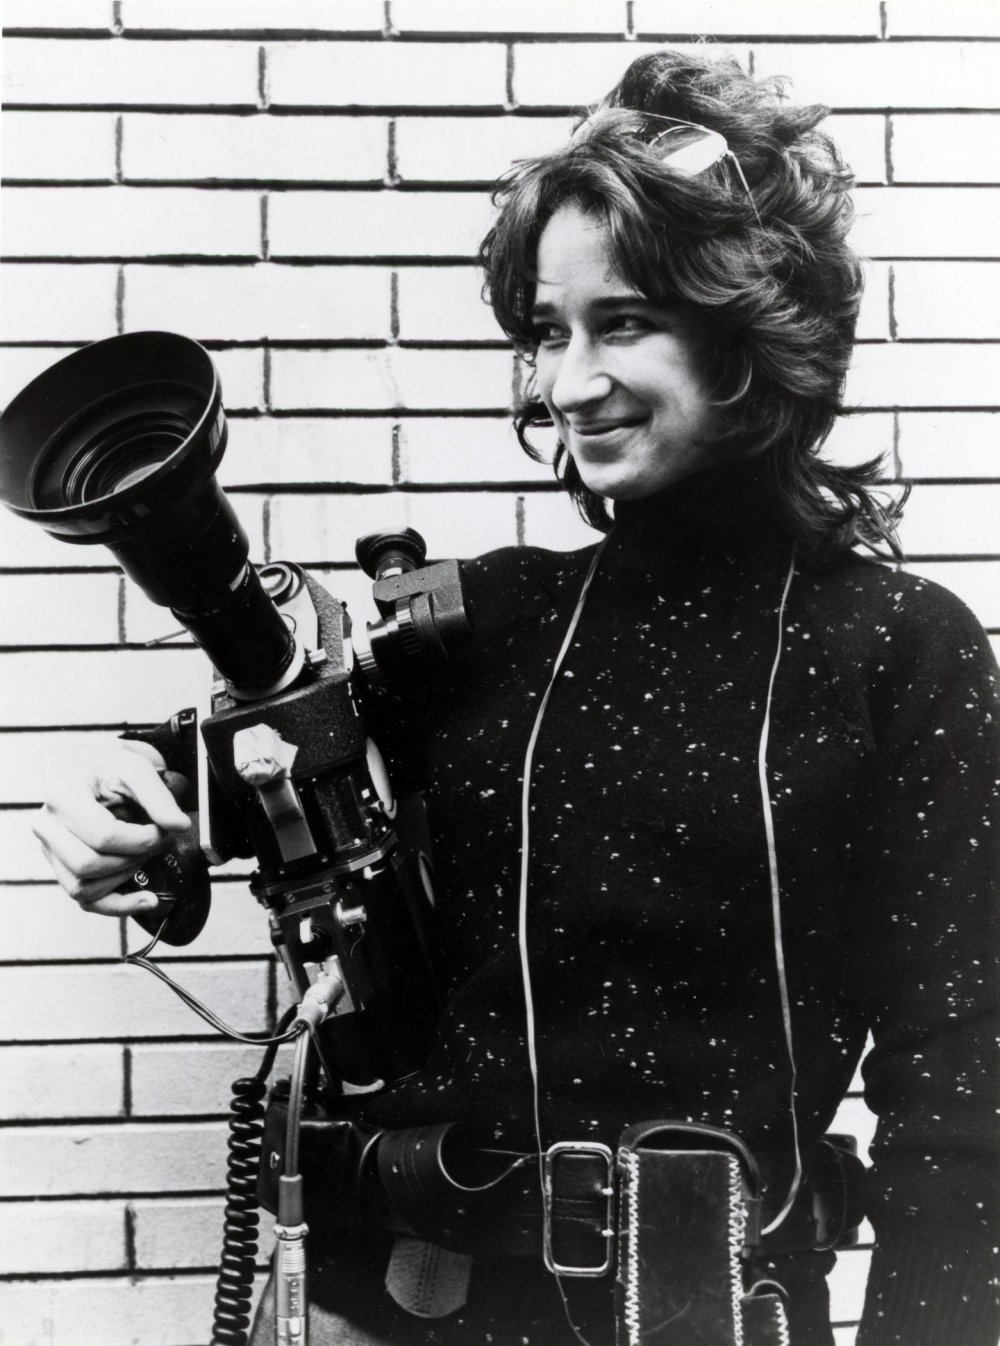 Claudia Weill directing Girlfriends (1978)